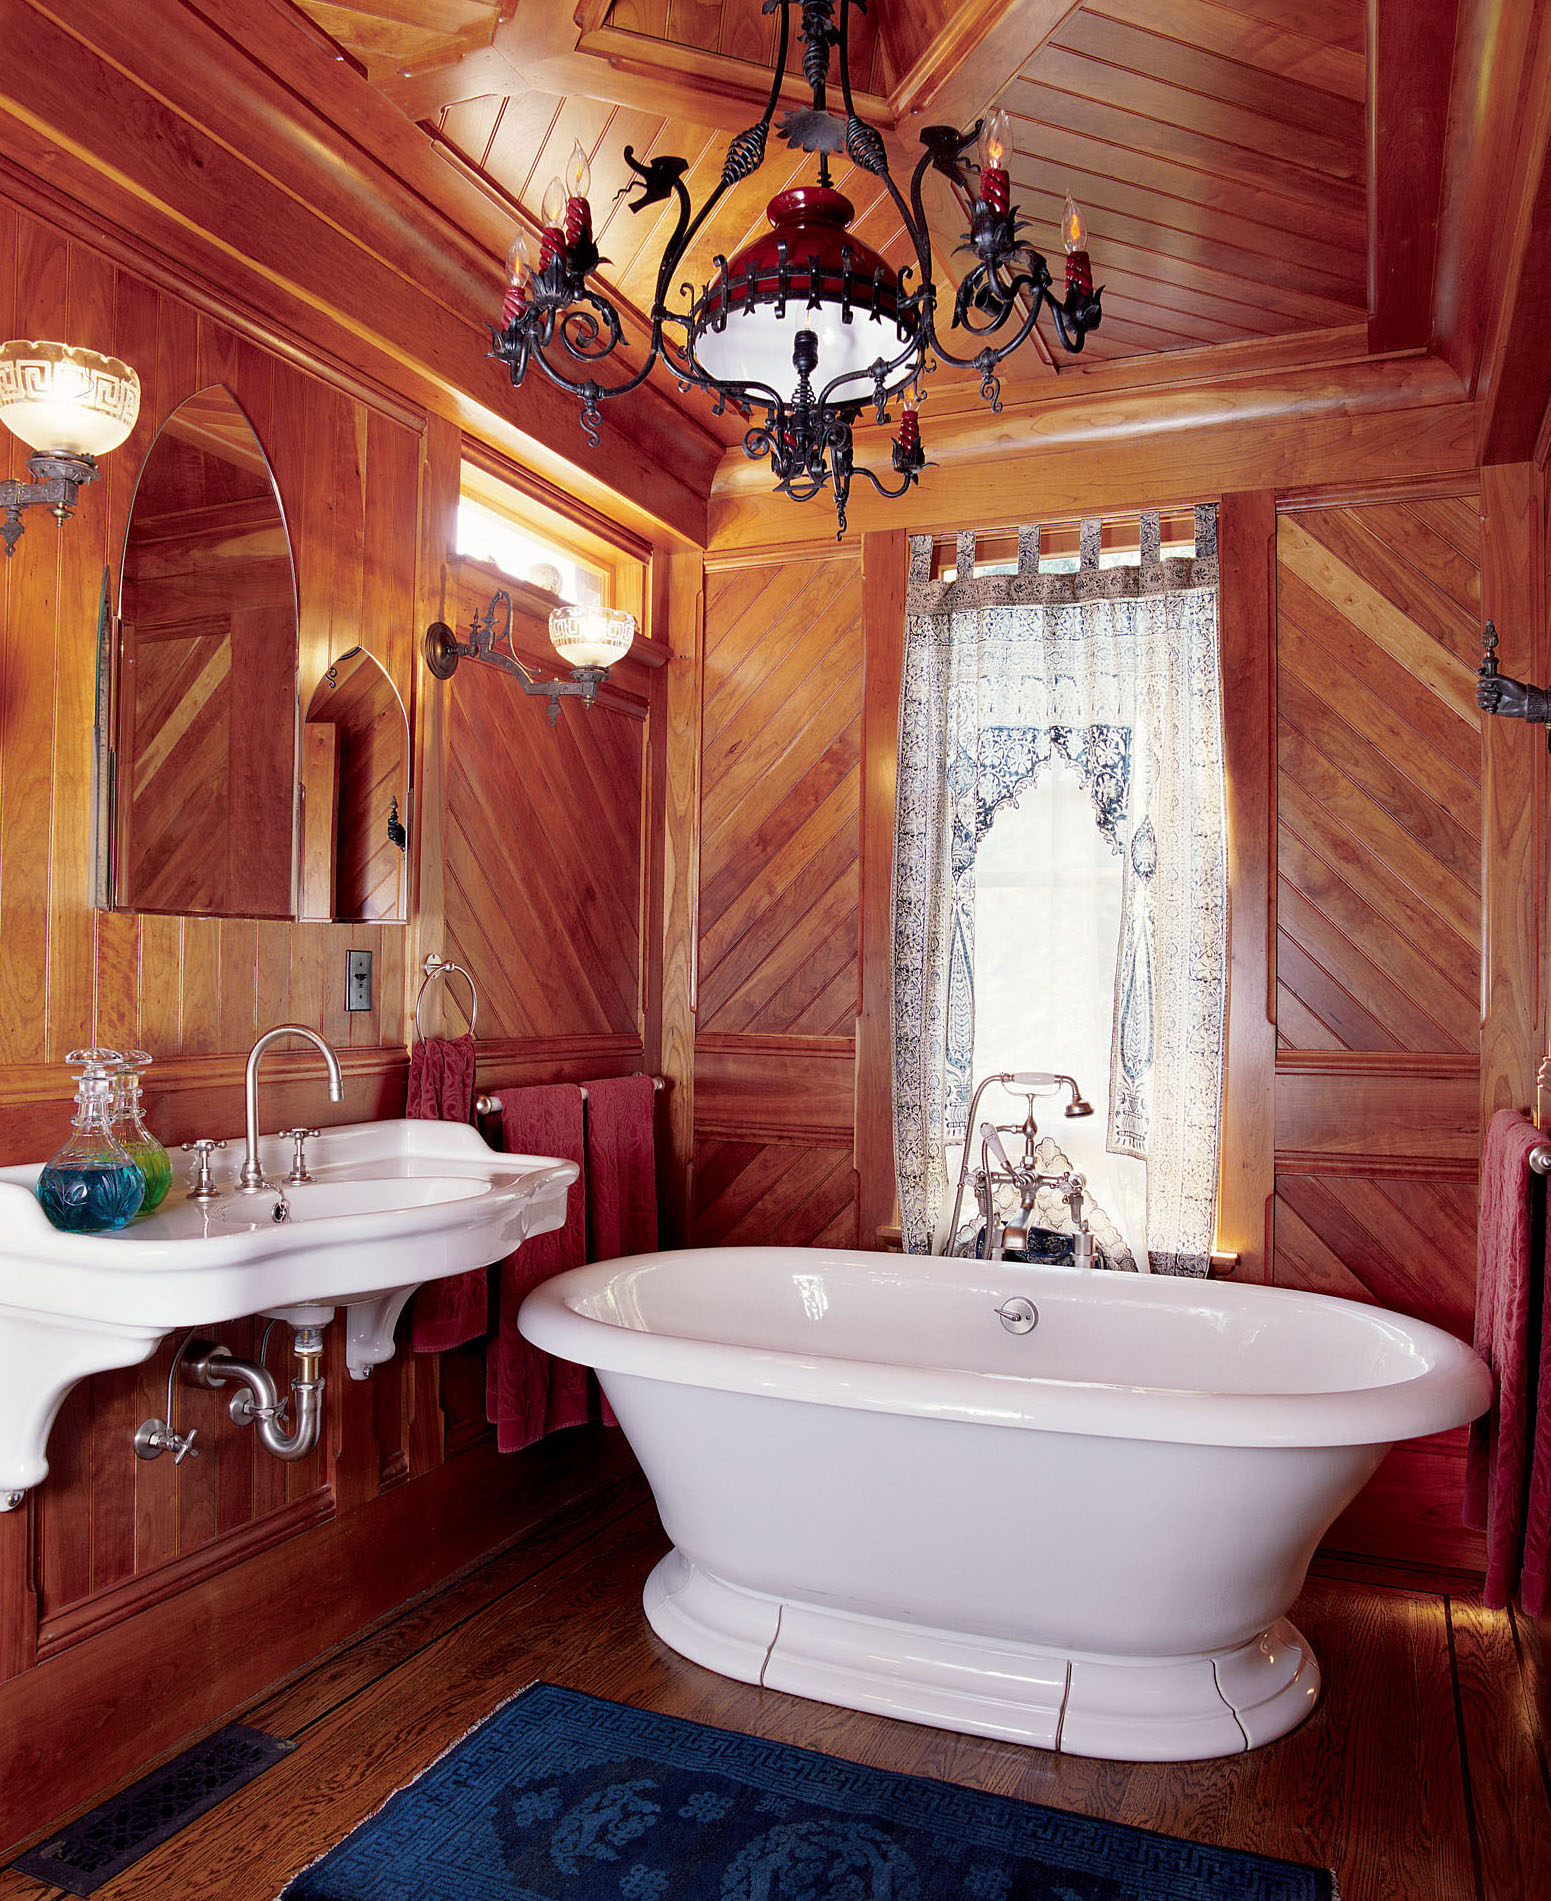 Victorian Bathroom: Designing The Victorian Bath For Today